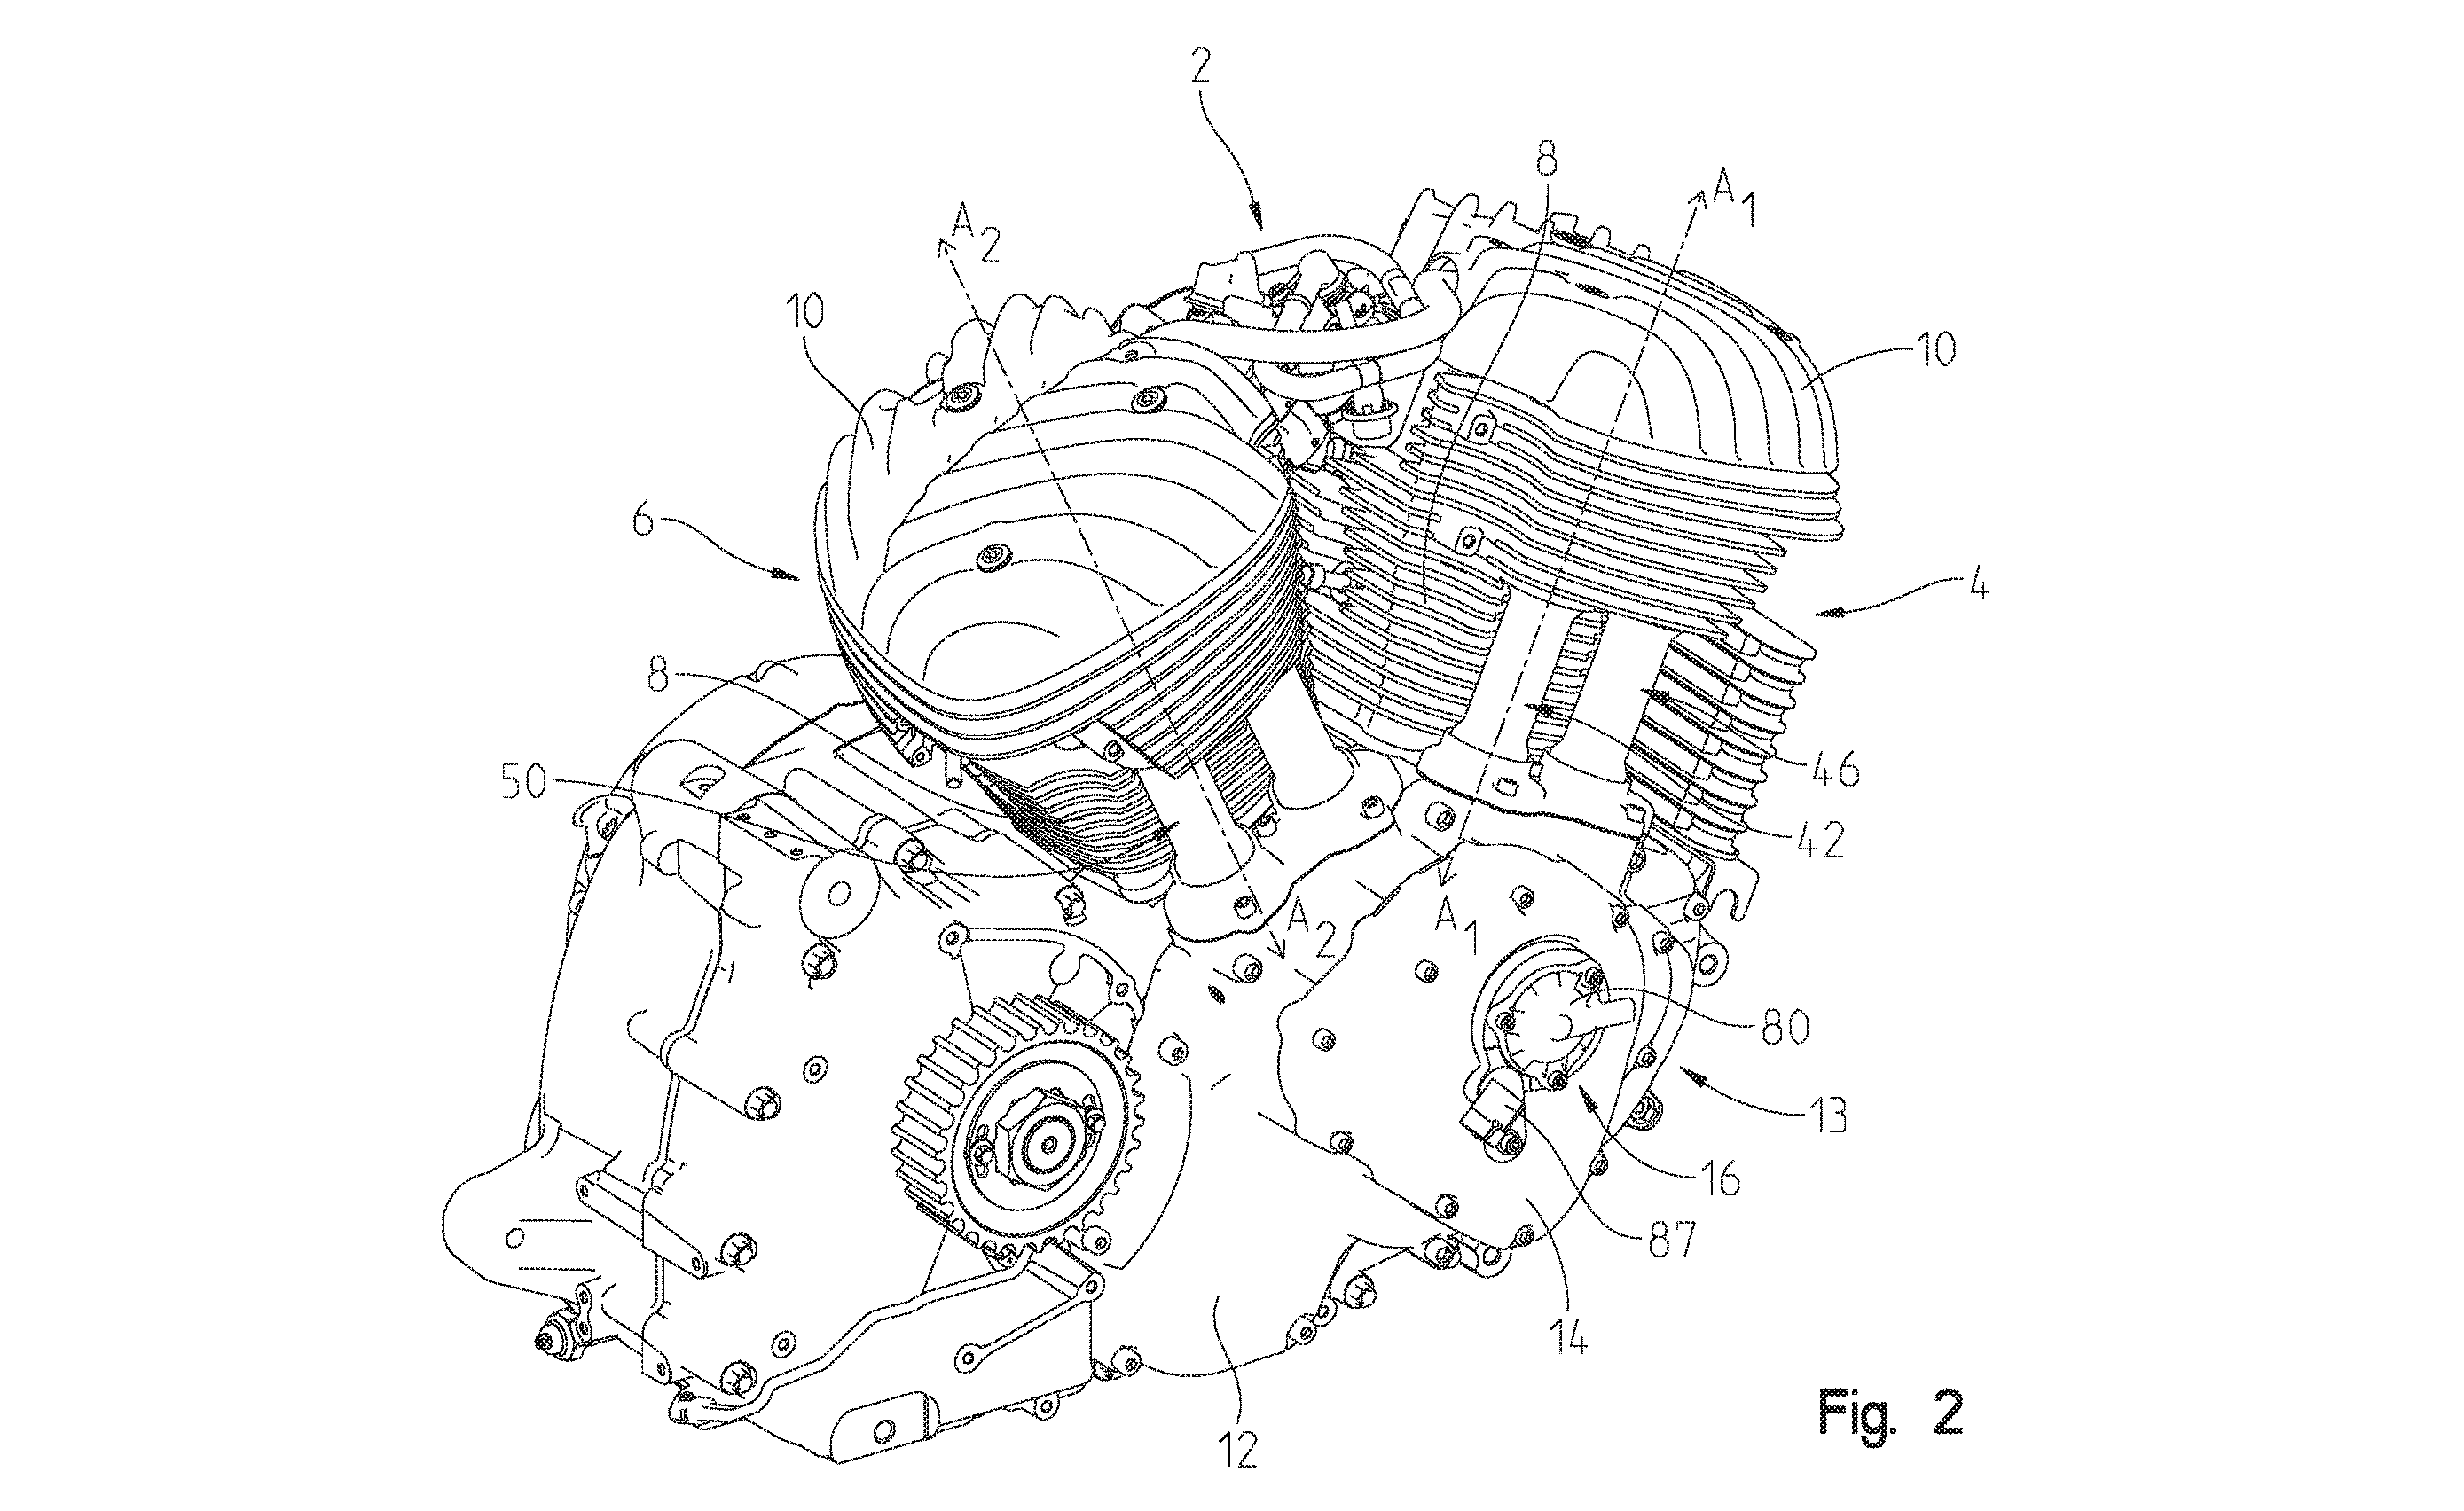 050919-indian-thunder-stroke-vvt-patent-fig-2